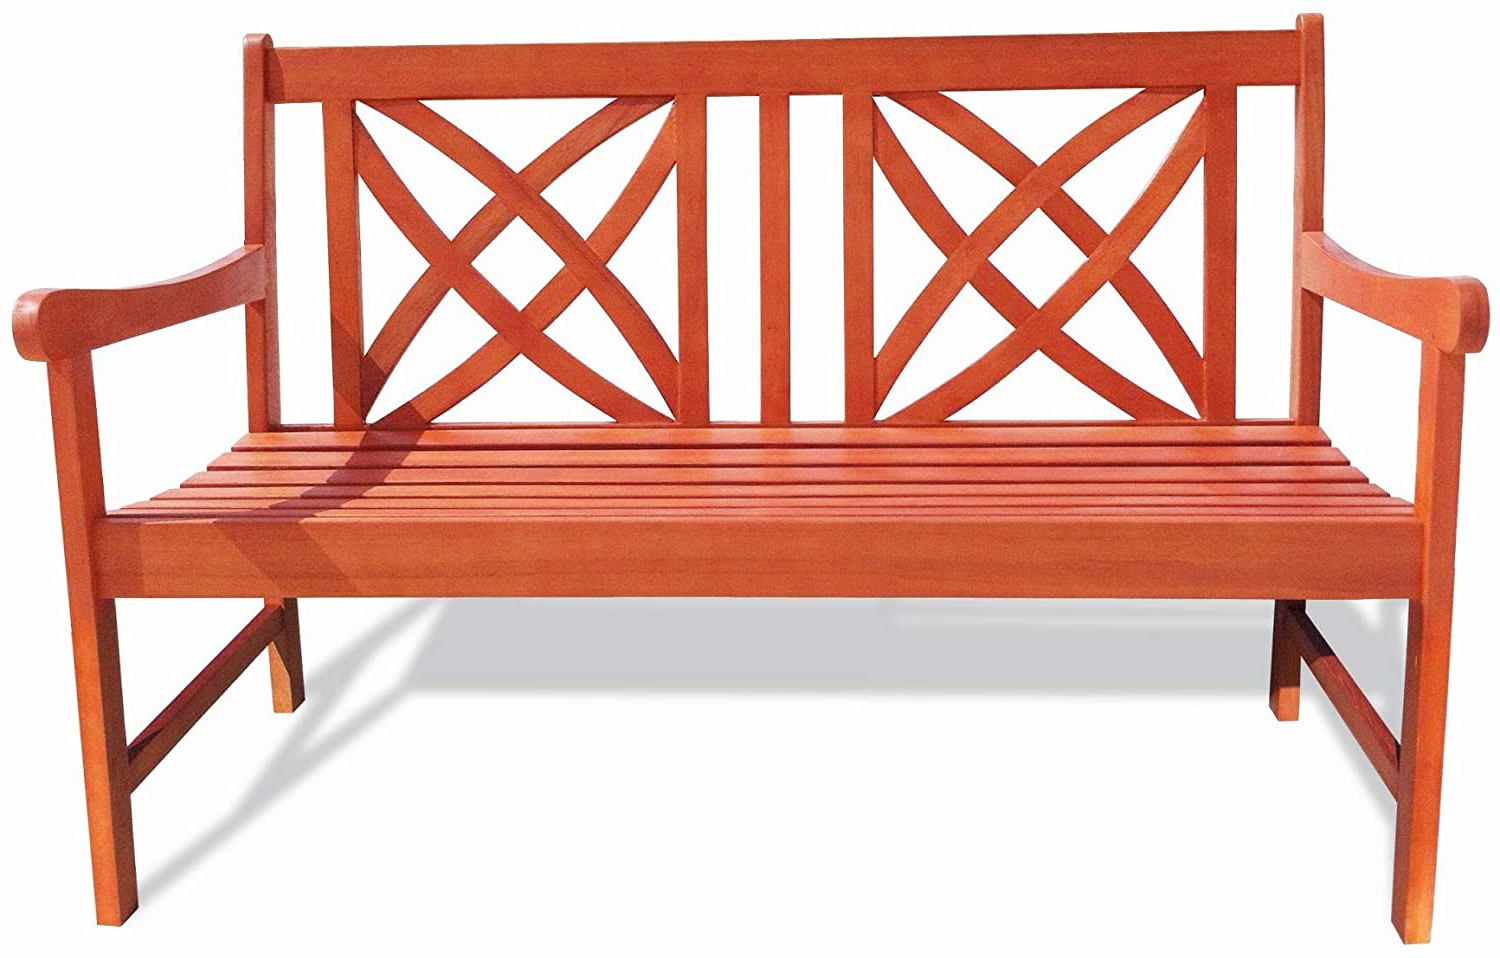 Amazon : Vifah Siesta Red Brown 4ft Magnolia Eucalyptus Regarding 2020 Guyapi Garden Benches (View 23 of 30)